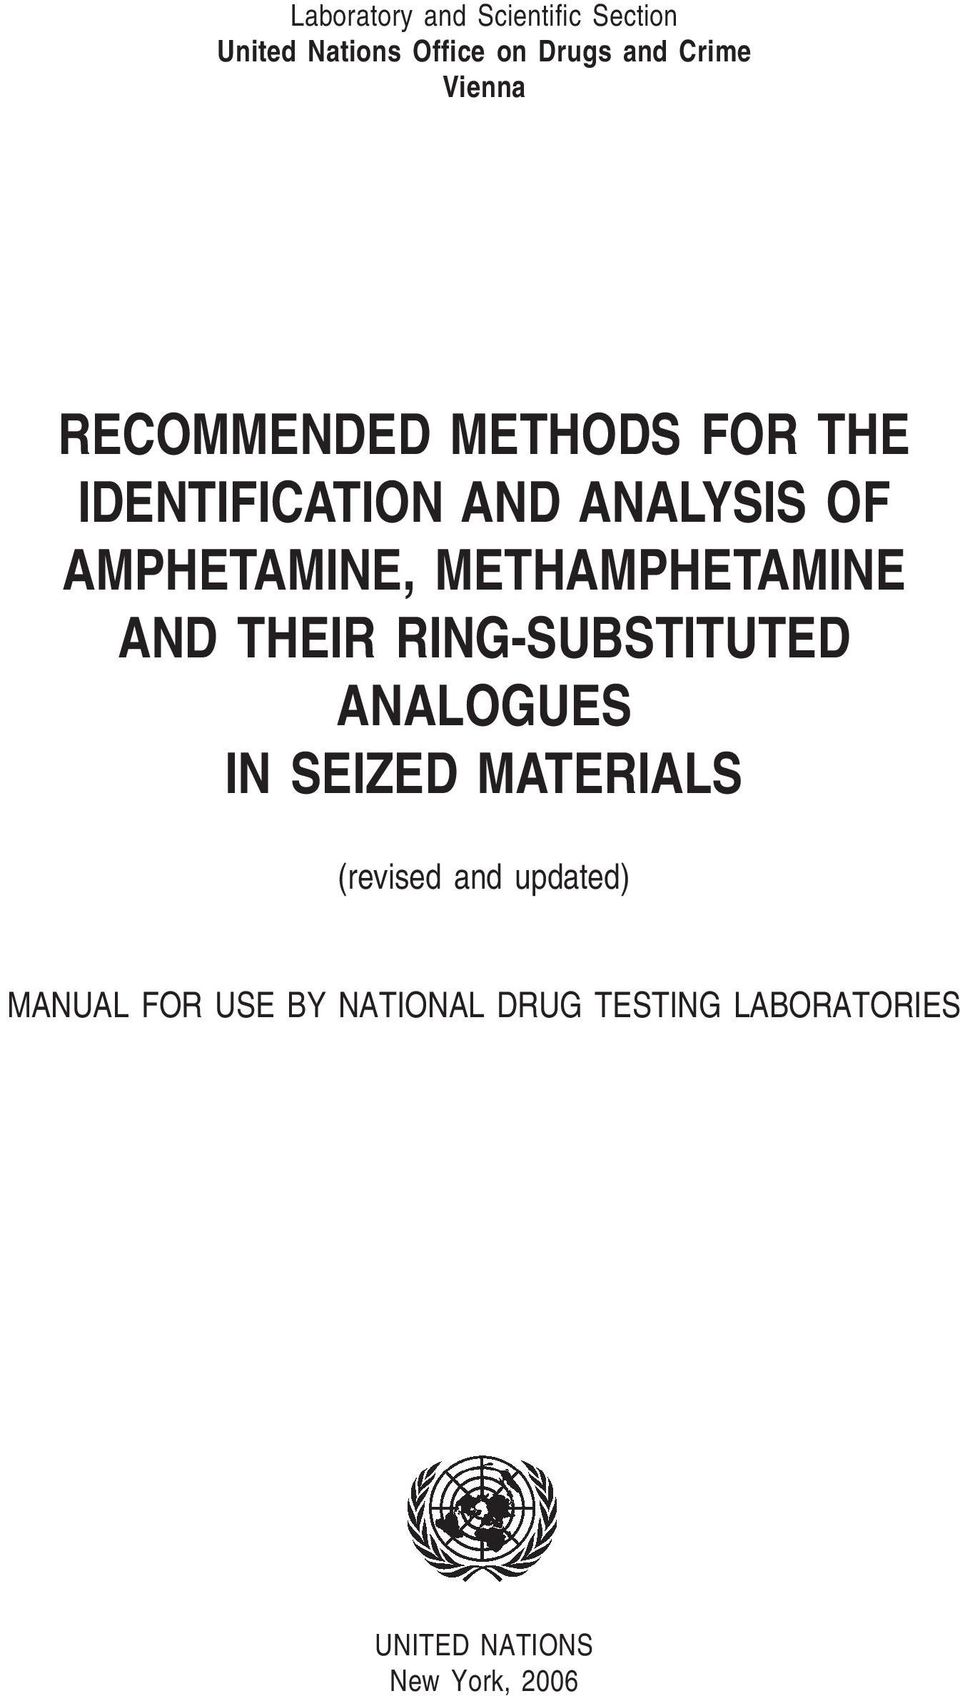 METHAMPHETAMINE AND THEIR RING-SUBSTITUTED ANALOGUES IN SEIZED MATERIALS (revised